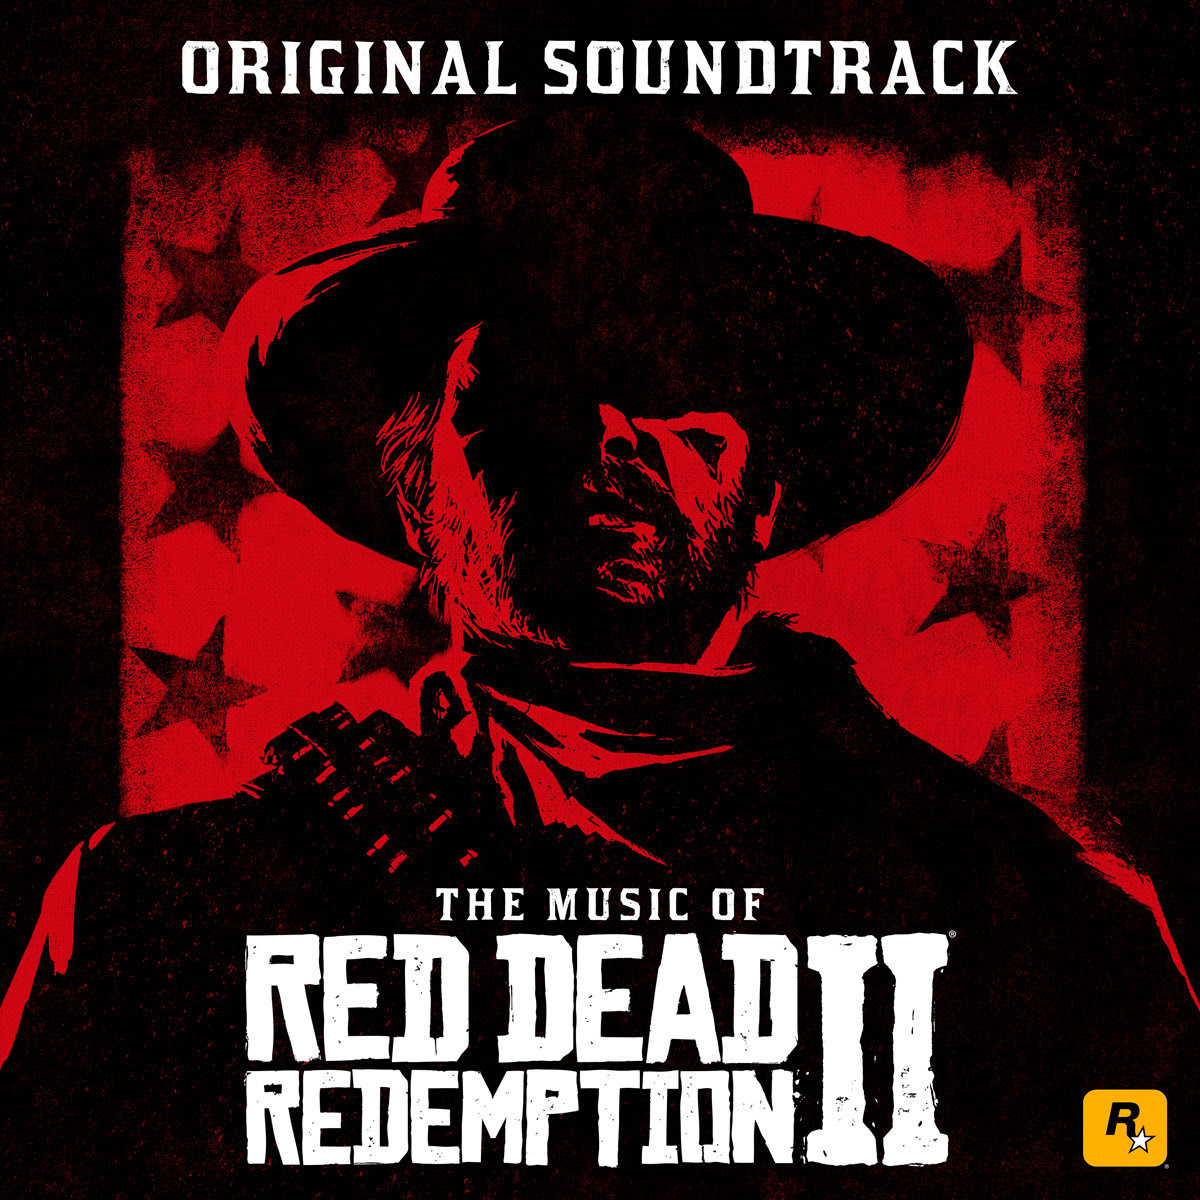 The Music Of Red Dead Redemption 2 Original Soundtrack album cover artwork